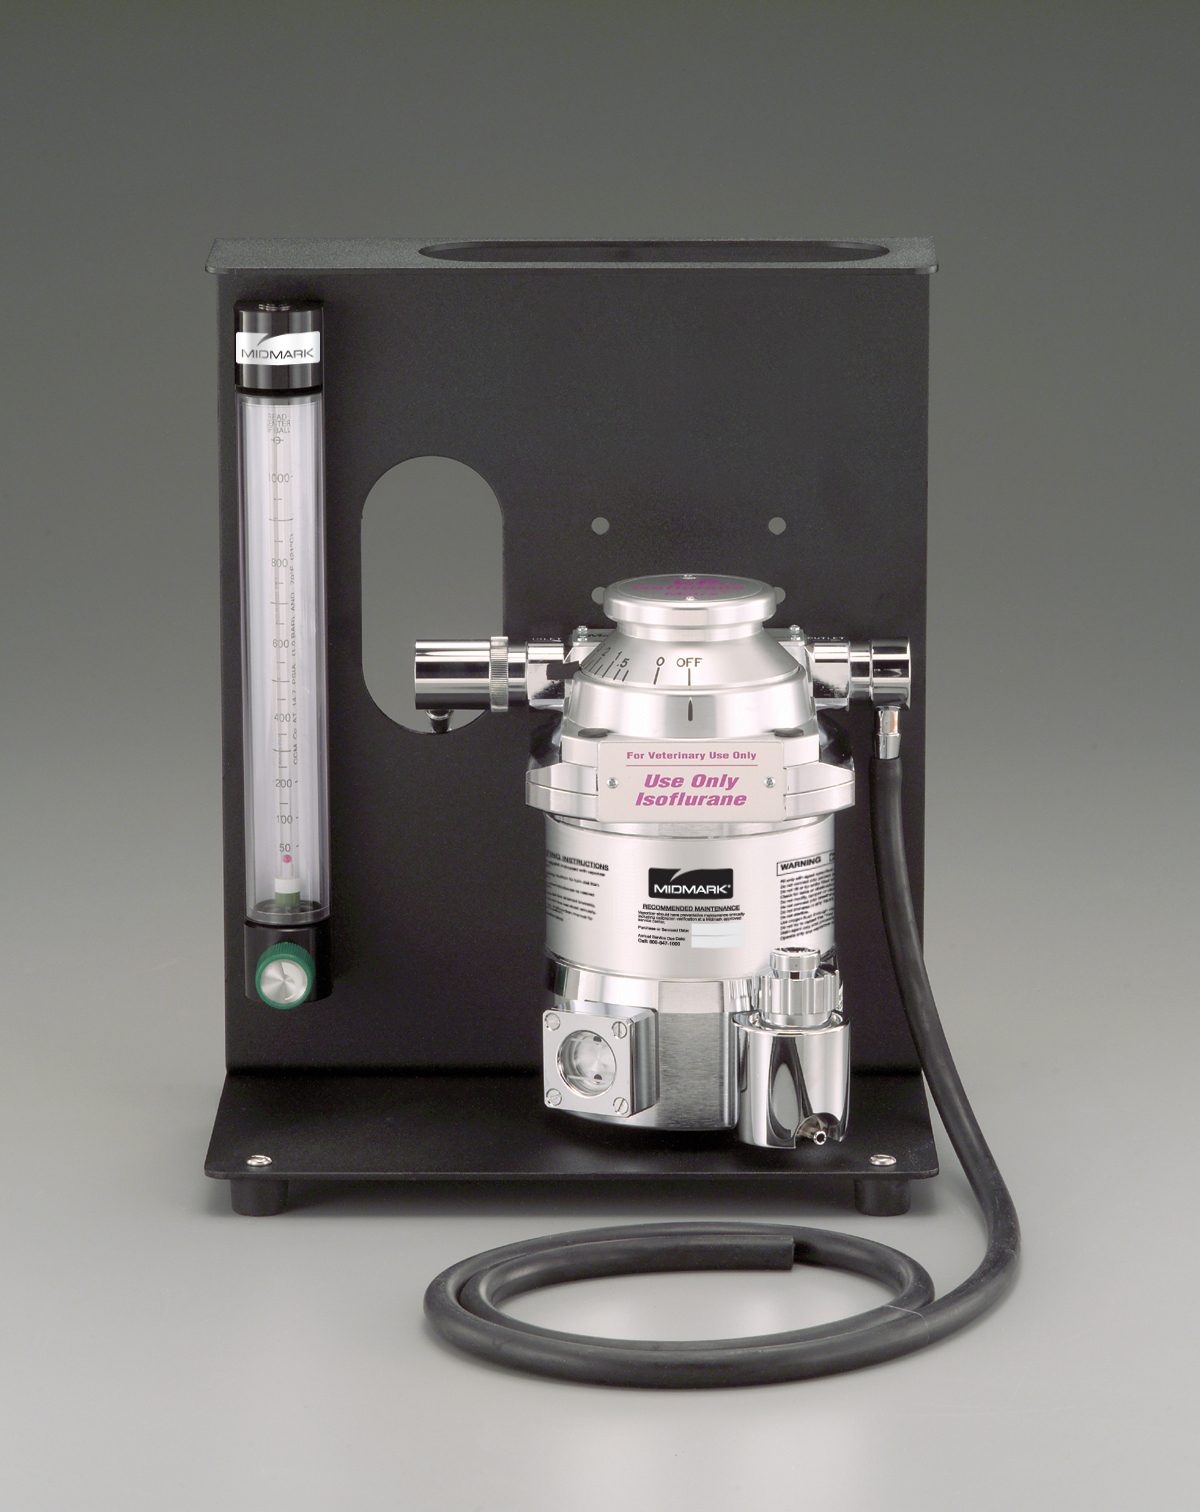 ANESTHETIC DELIVERY SYSTEMS, NON-REBREATHING, MATRX VMR TABLETOP W/SEVOFLURANE WELL-FILL VAPORIZER